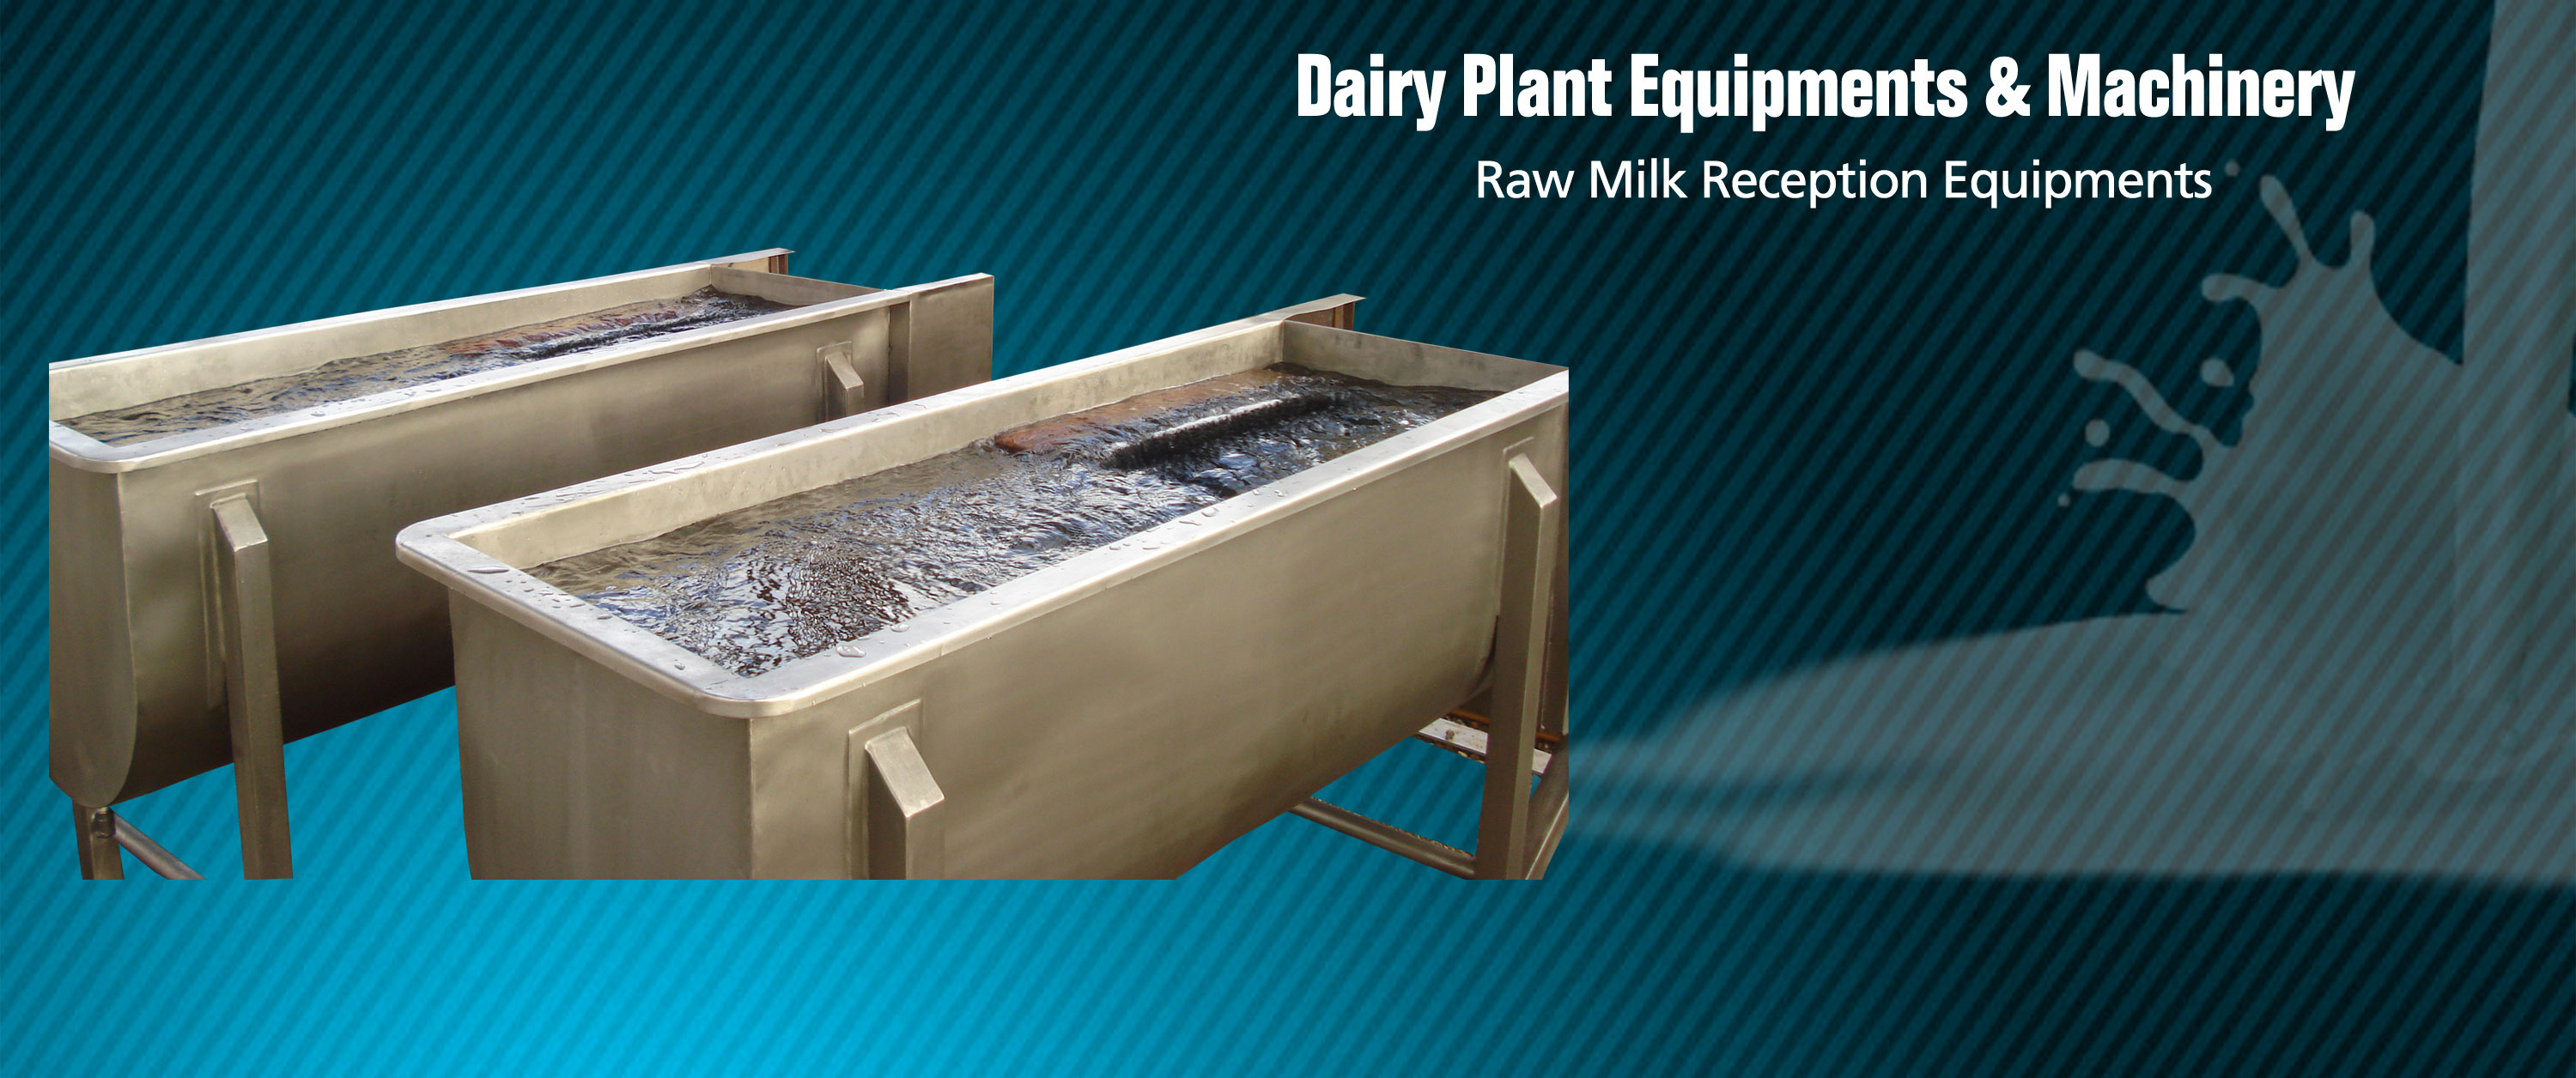 Dairy Plant Equipments & Machinery